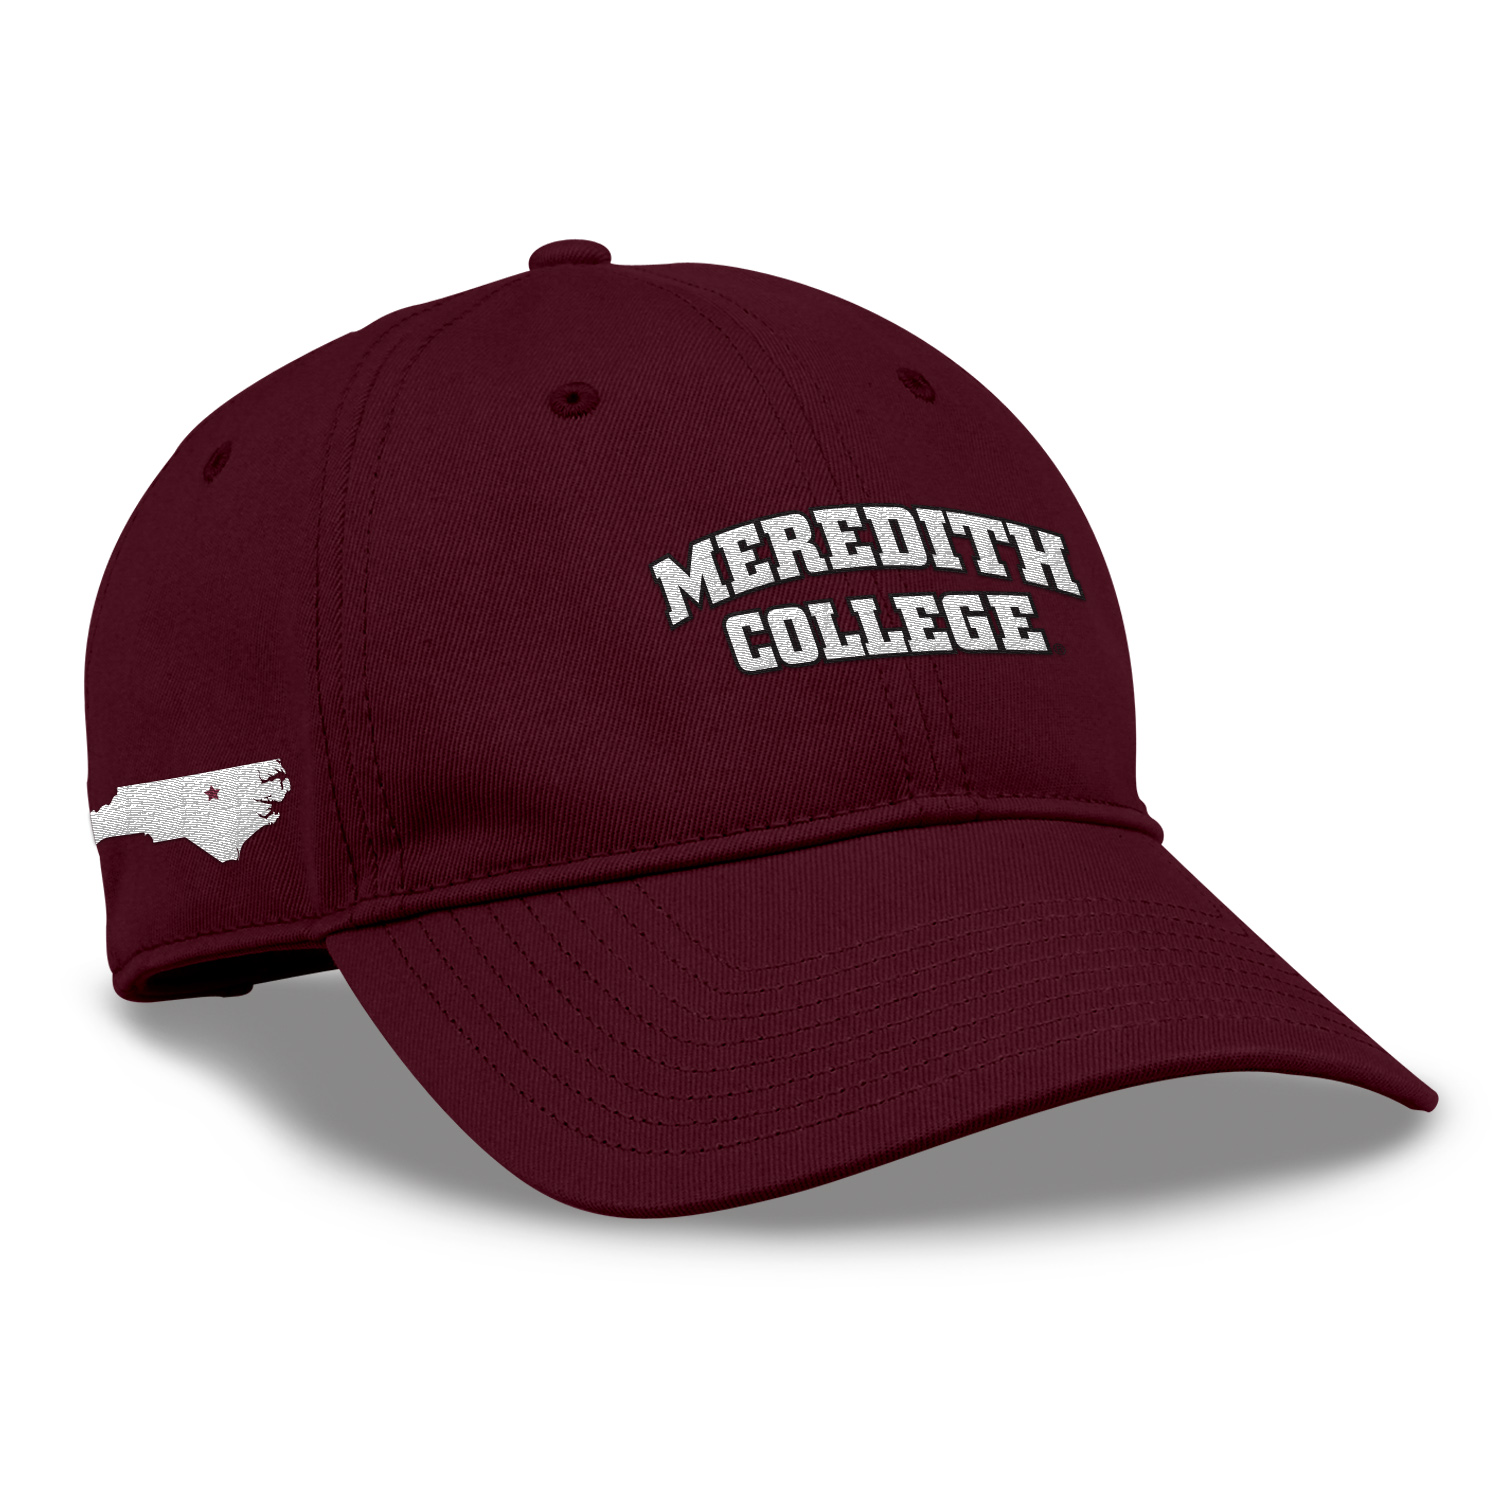 Image for the Garment Washed Maroon Twill Hat 2-loc product